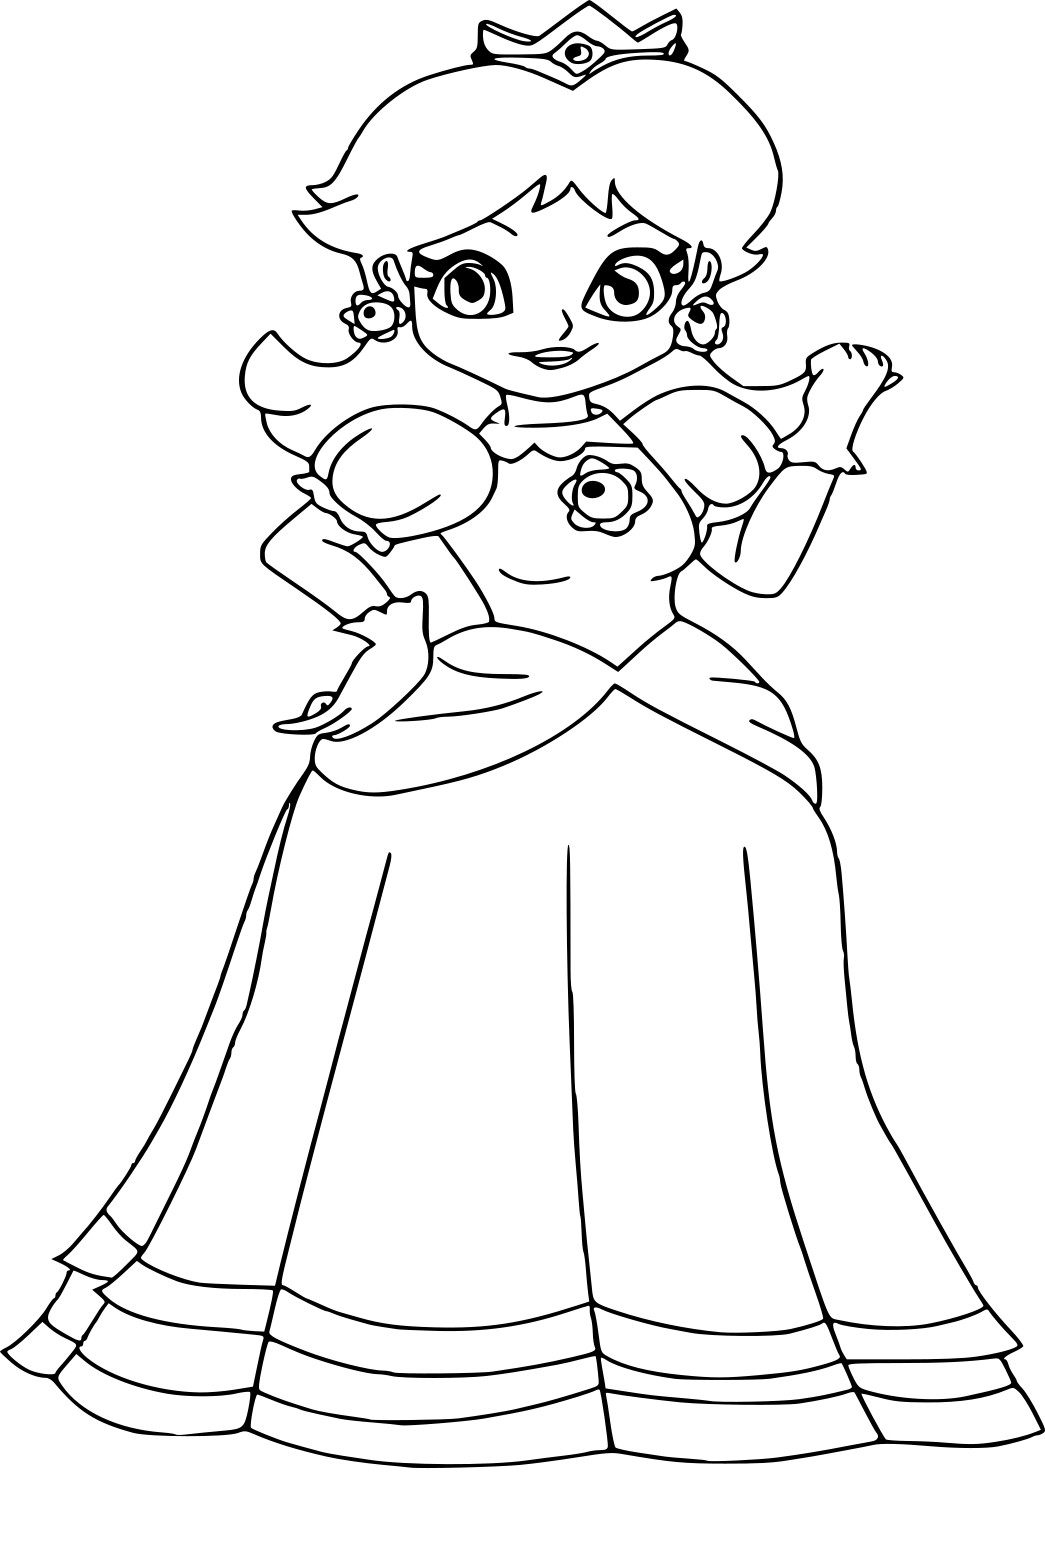 Coloriage princesse peach colorier les enfants - Comment dessiner peach ...